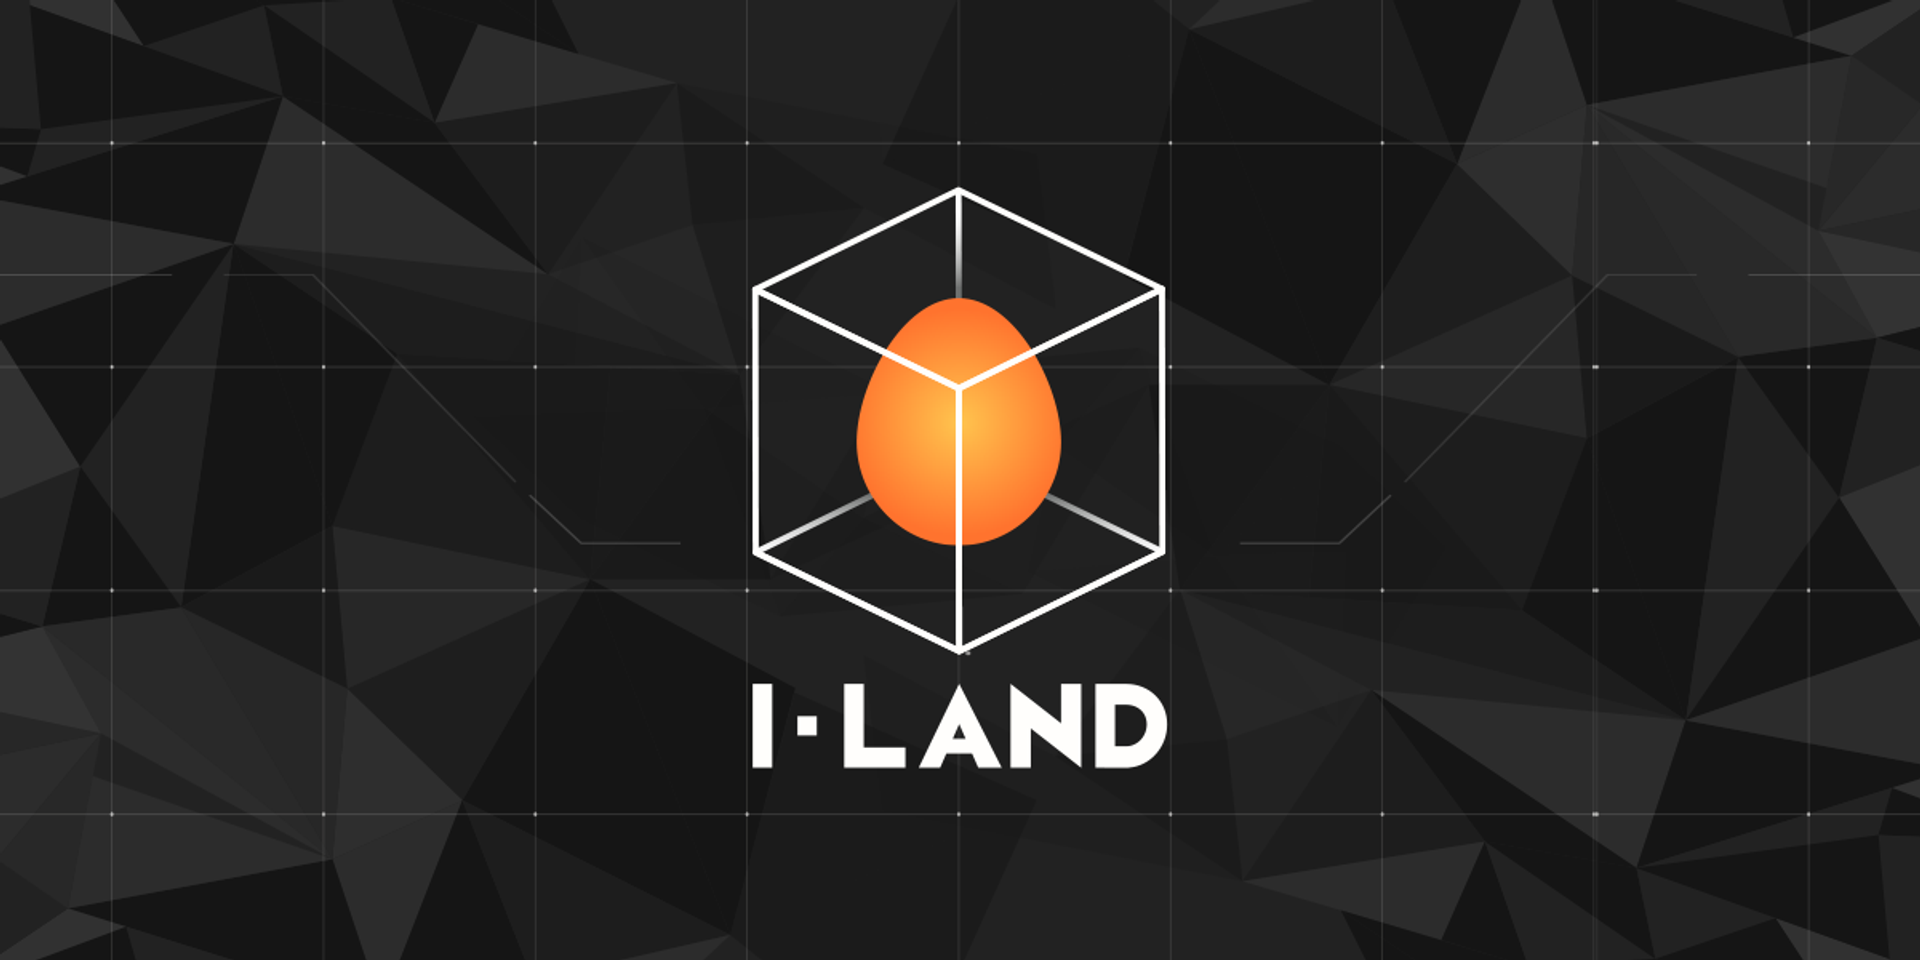 HYBE and Mnet launch search for new girl group in I-LAND 2